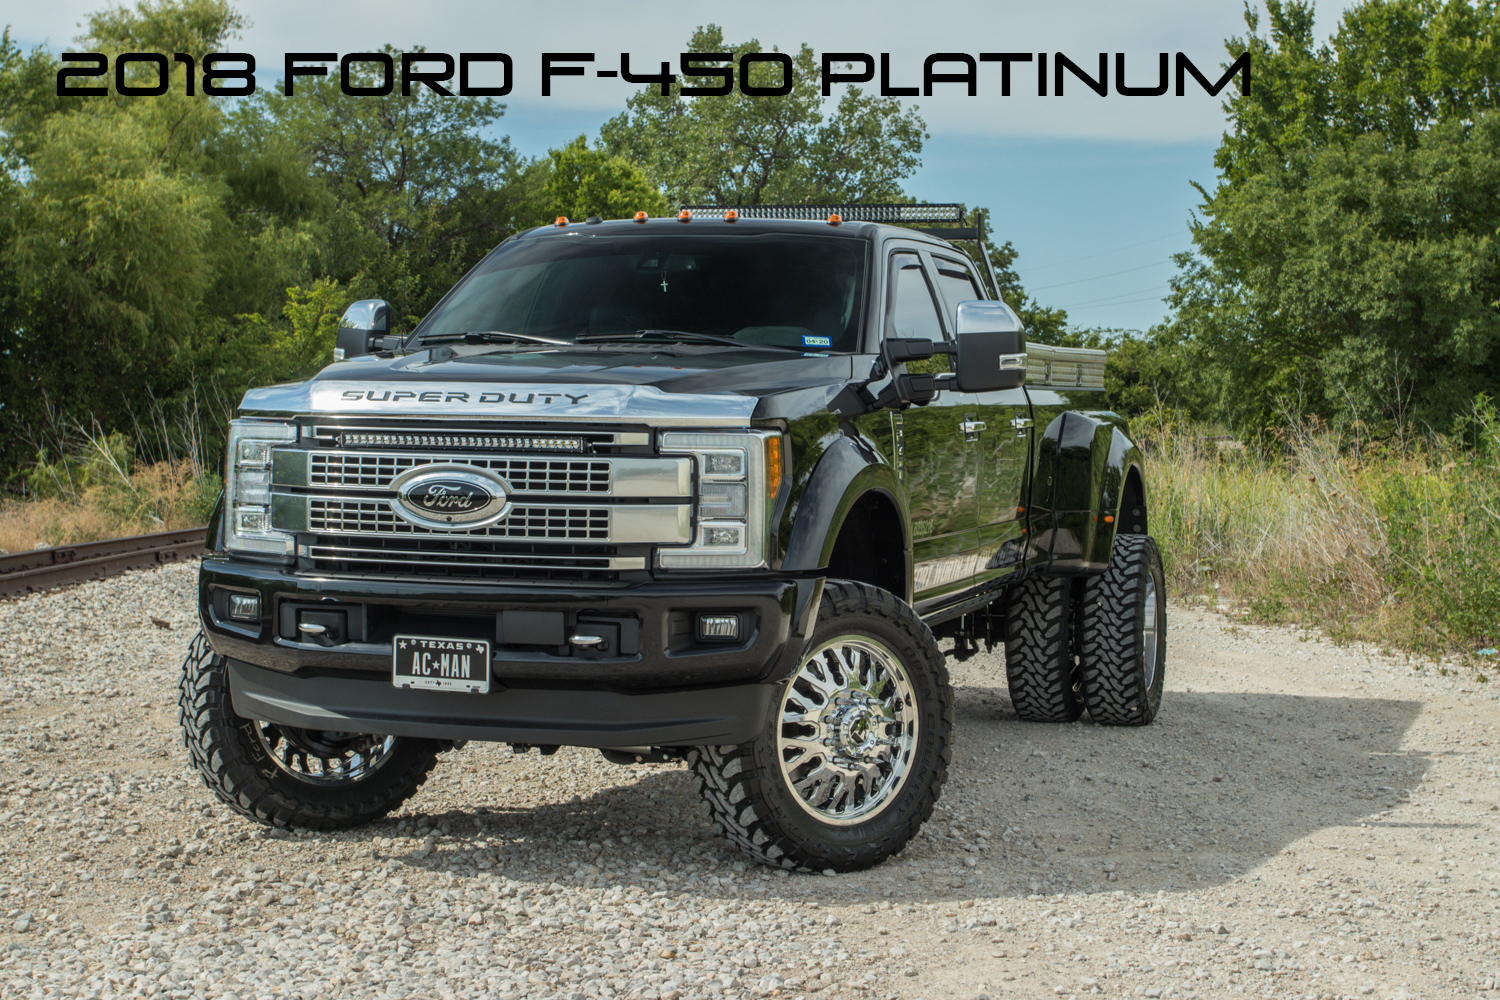 RAD Rides Custom Lifted 4x4 Truck Builds with 4WD Aftermarket